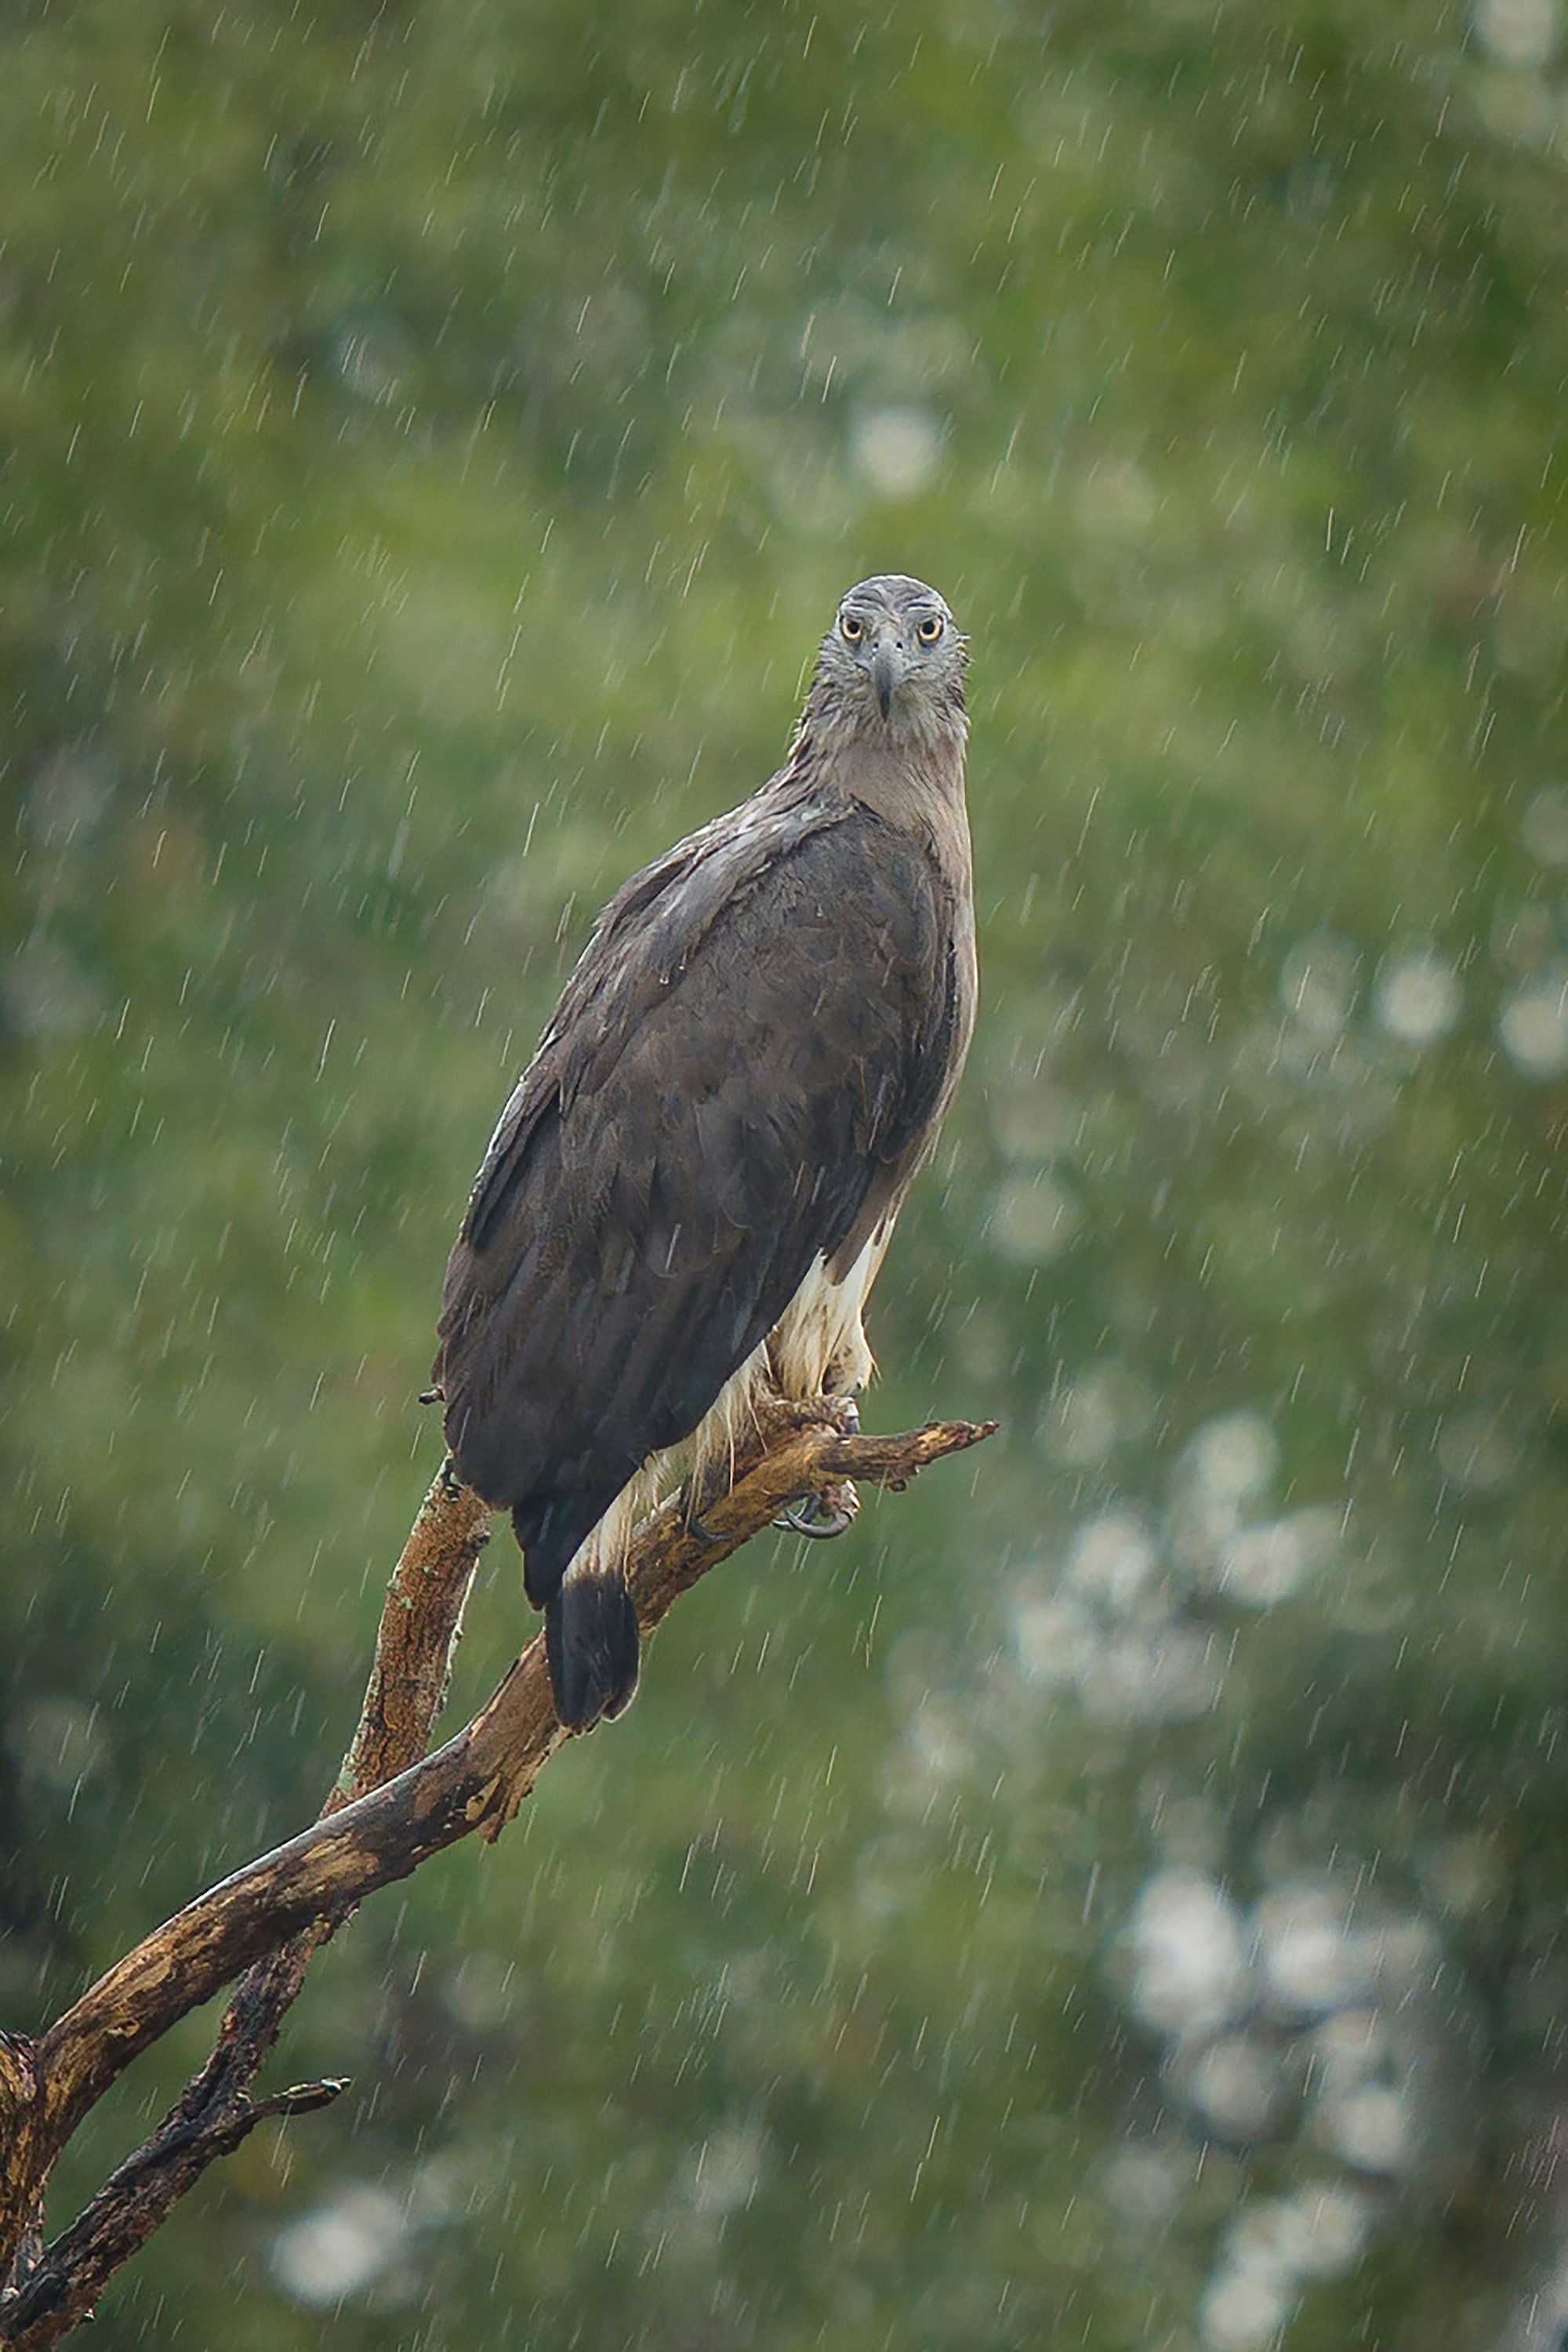 Sony Alpha 7R IV is hardy in wet conditions. Grey-Headed Fish Eagle in rain with approx. 3.8x crop, captured by Sony Alpha 7R IV.